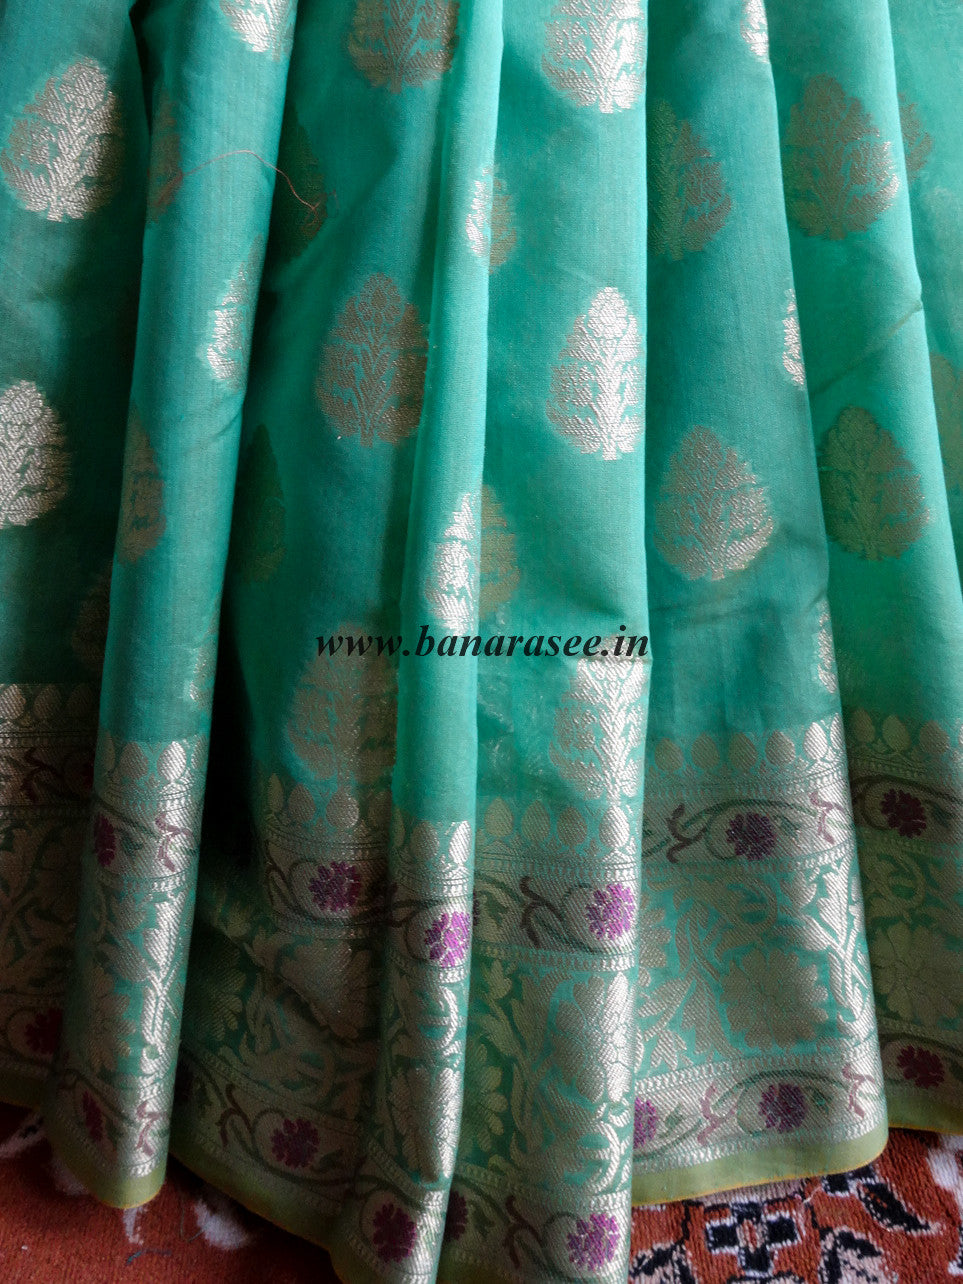 Banarasee/Banarasi Handloom Cotton Silk Mix Paithani Border Sari-Green(Dual Tone)